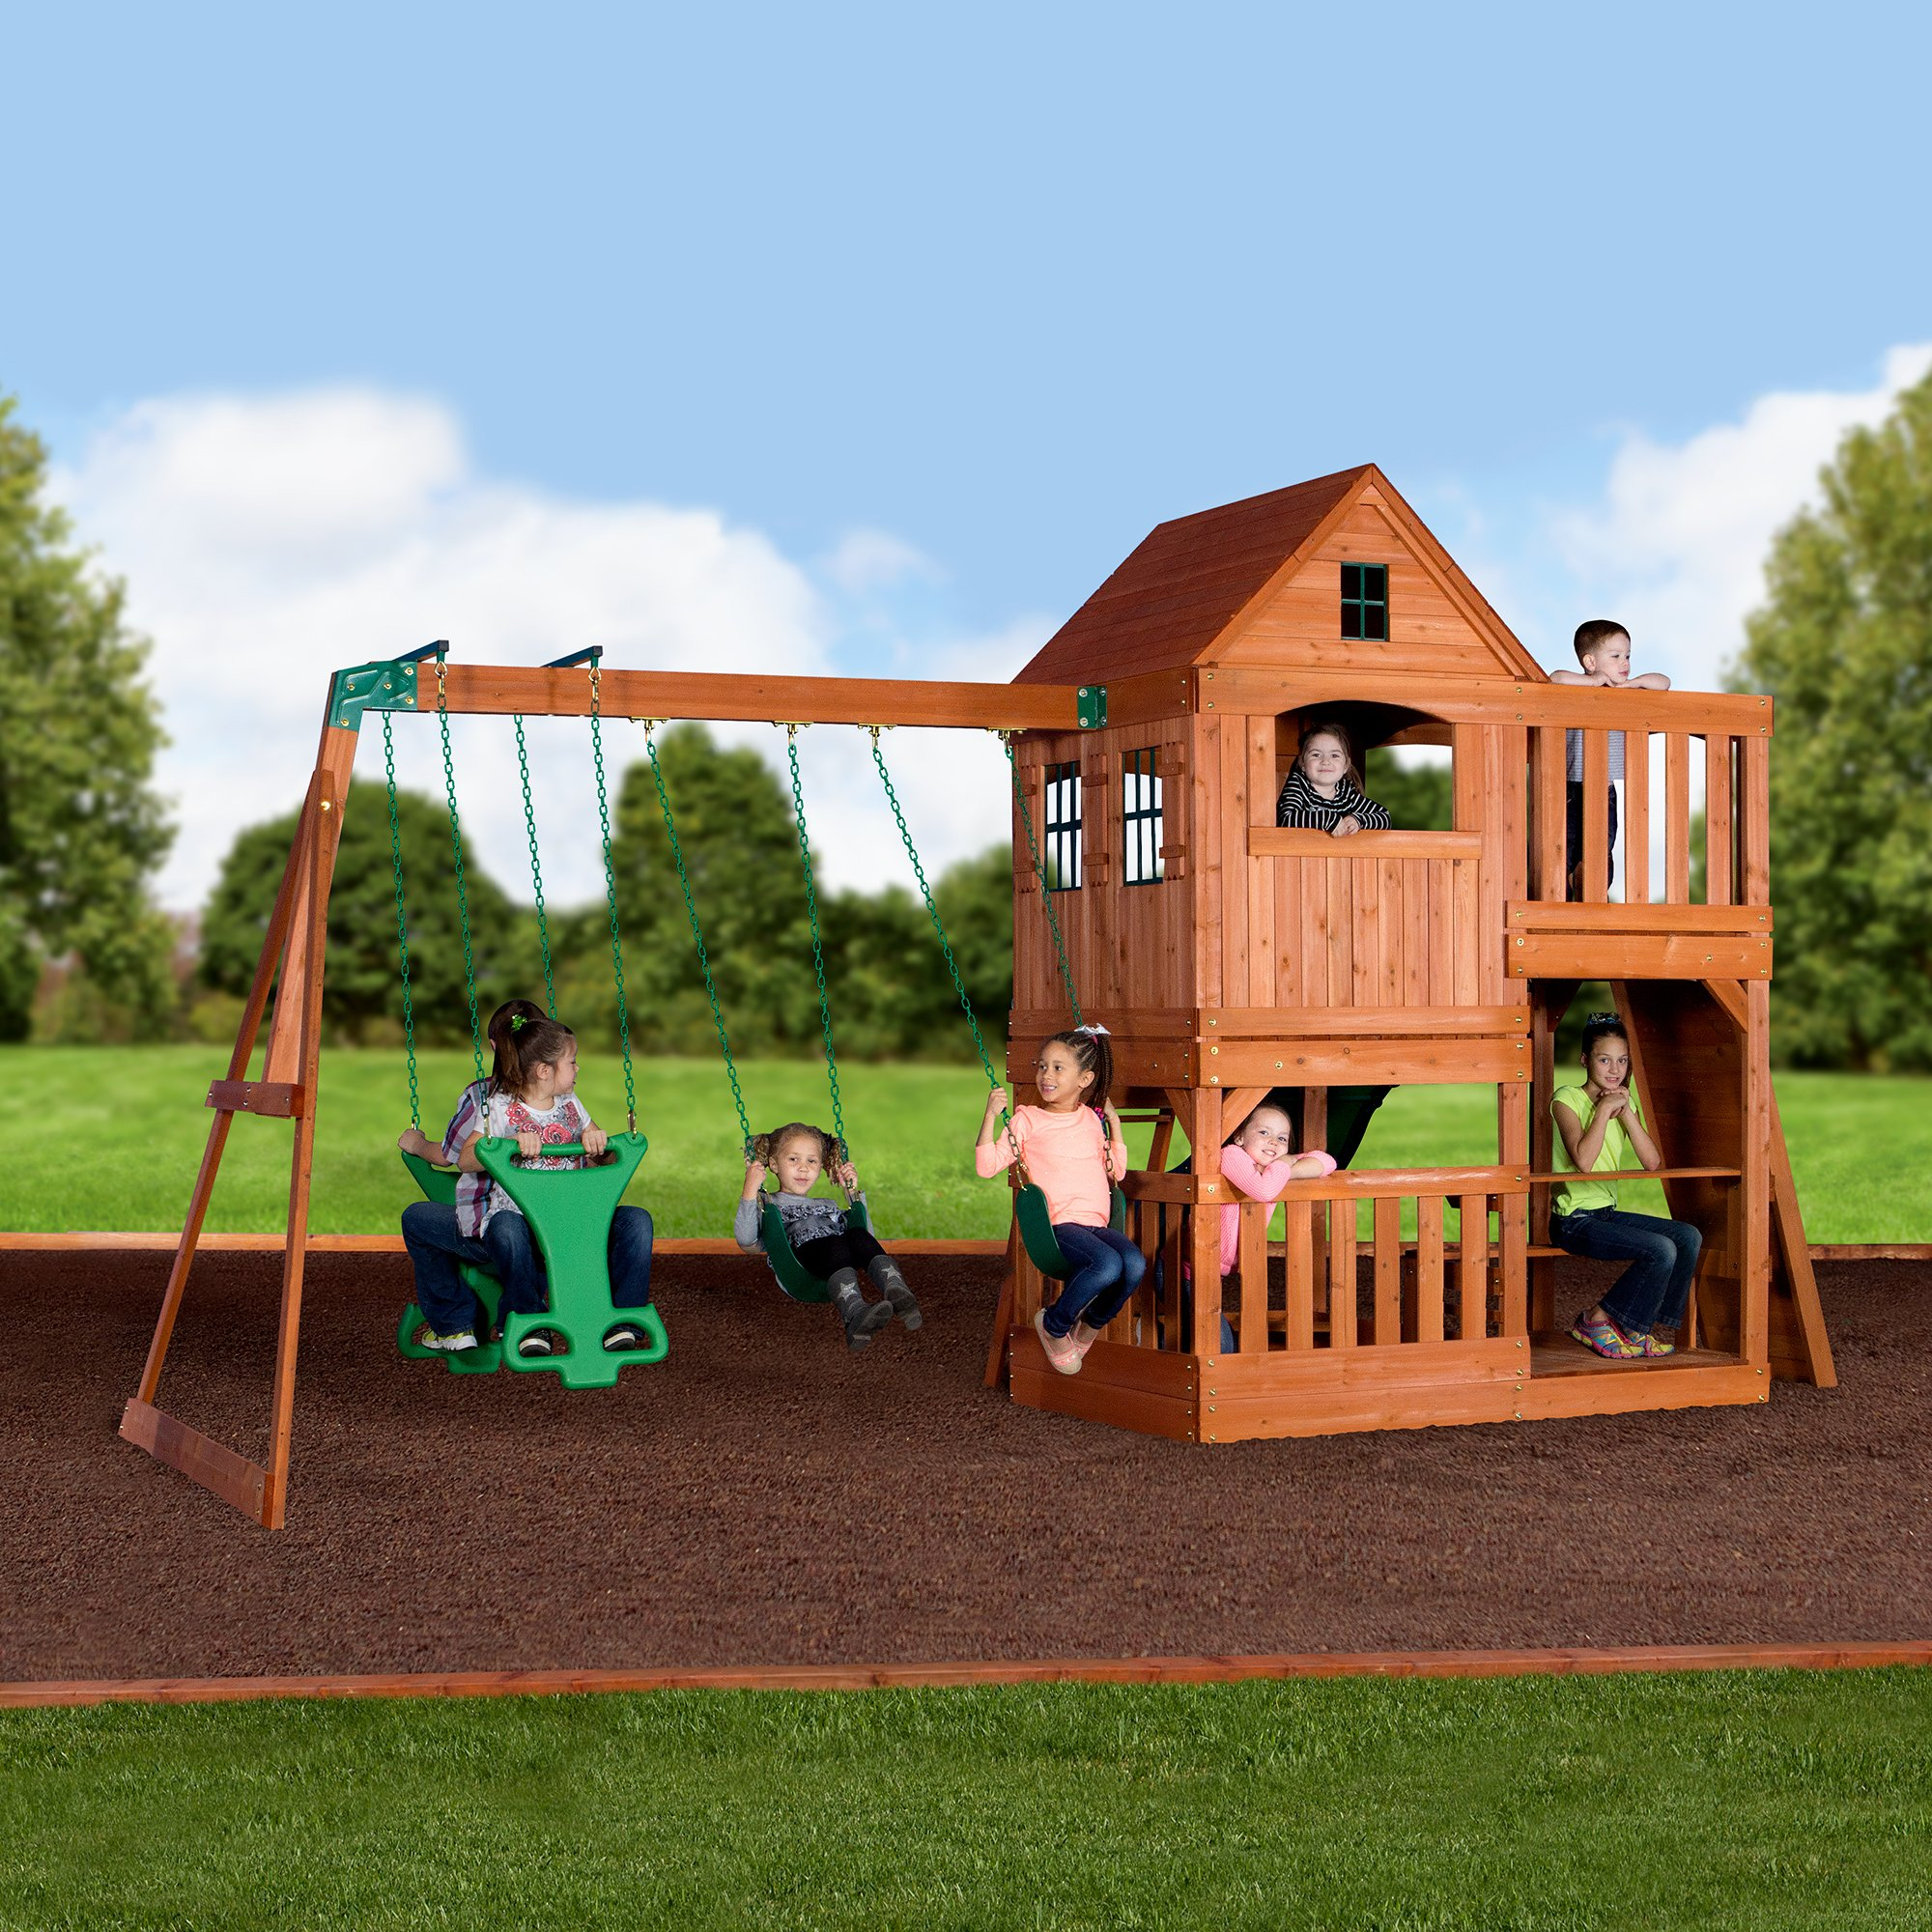 Backyard Discovery Pacific View All Cedar Wood Playset Swing Set by Backyard Discovery (Image #8)